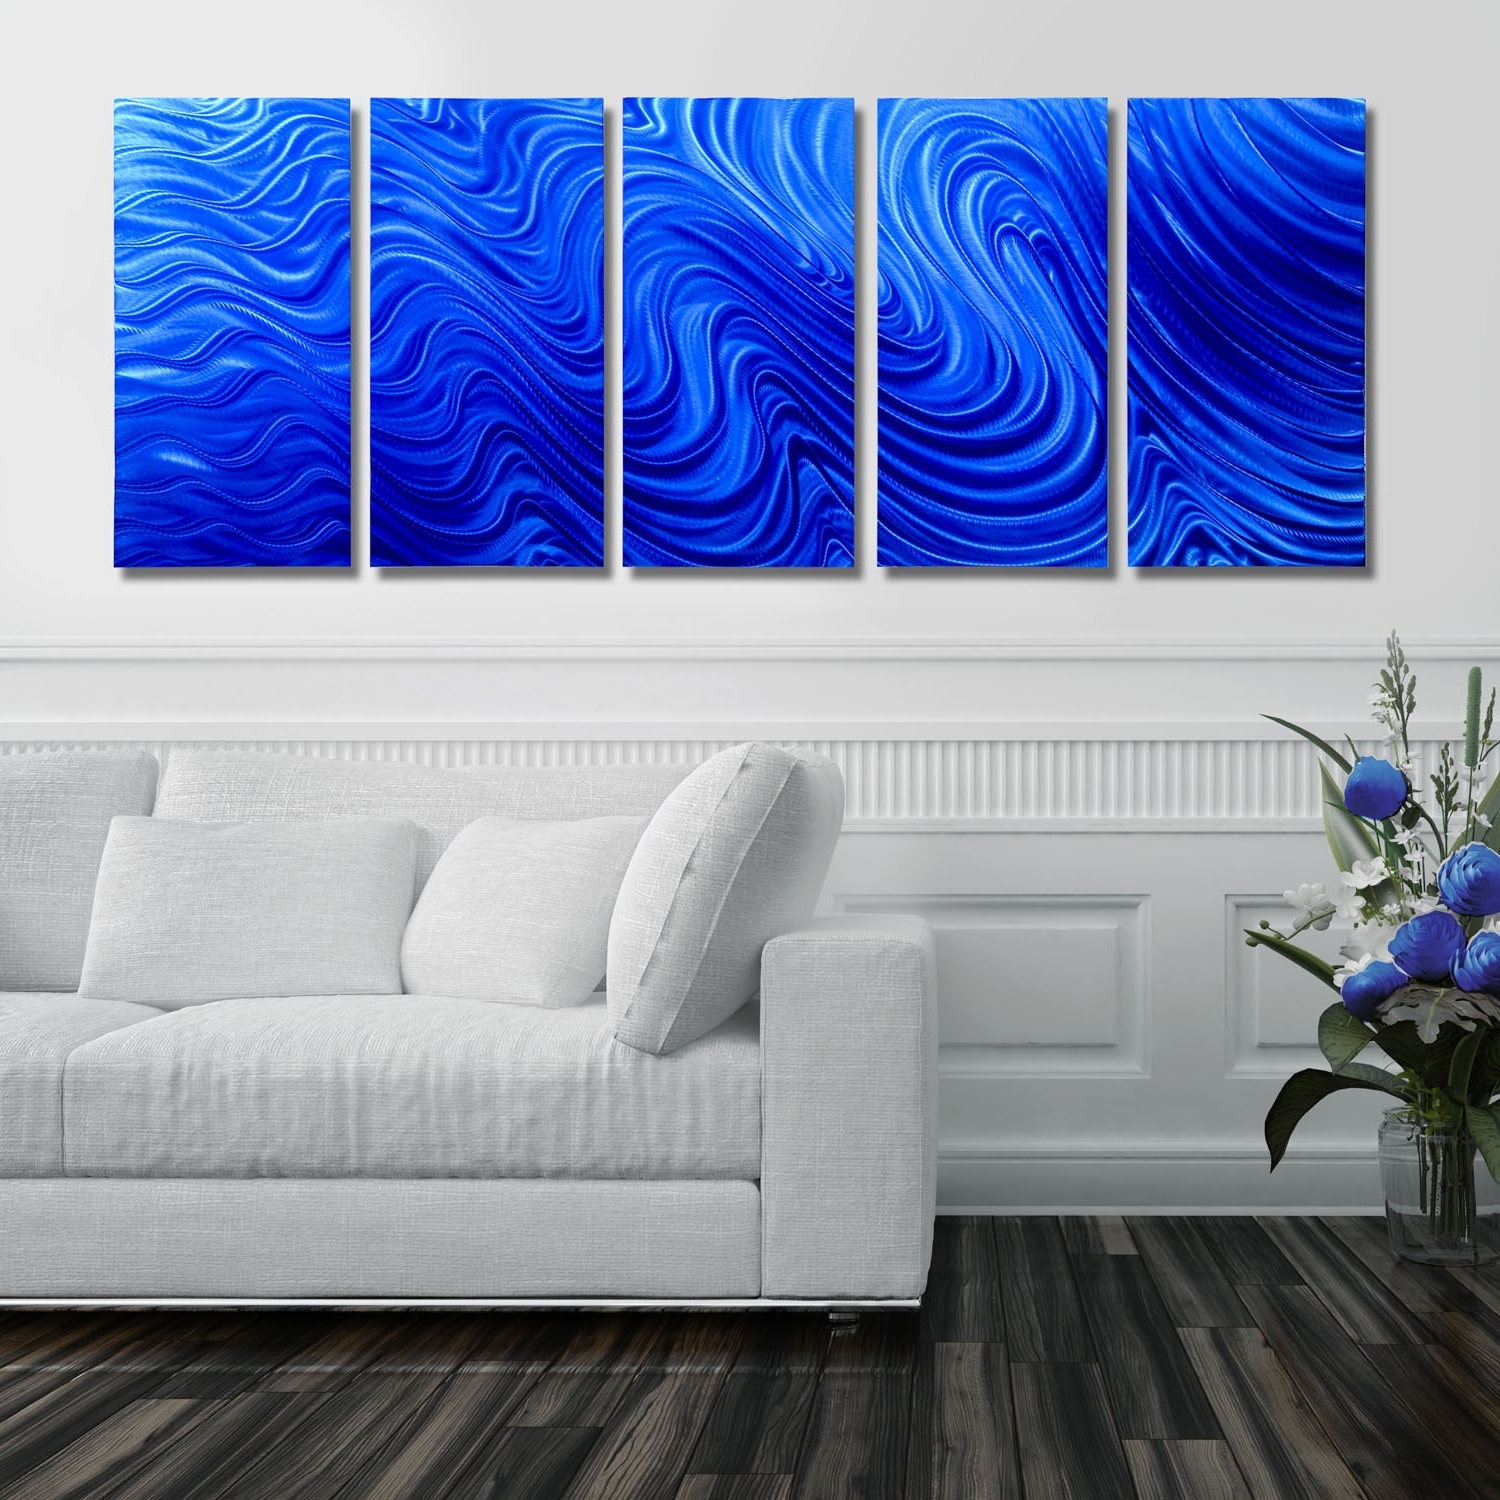 Well Known Large Abstract Metal Wall Art Throughout Home Decor: Tempting Abstract Metal Wall Art Plus Blue Hypnotic (View 10 of 15)